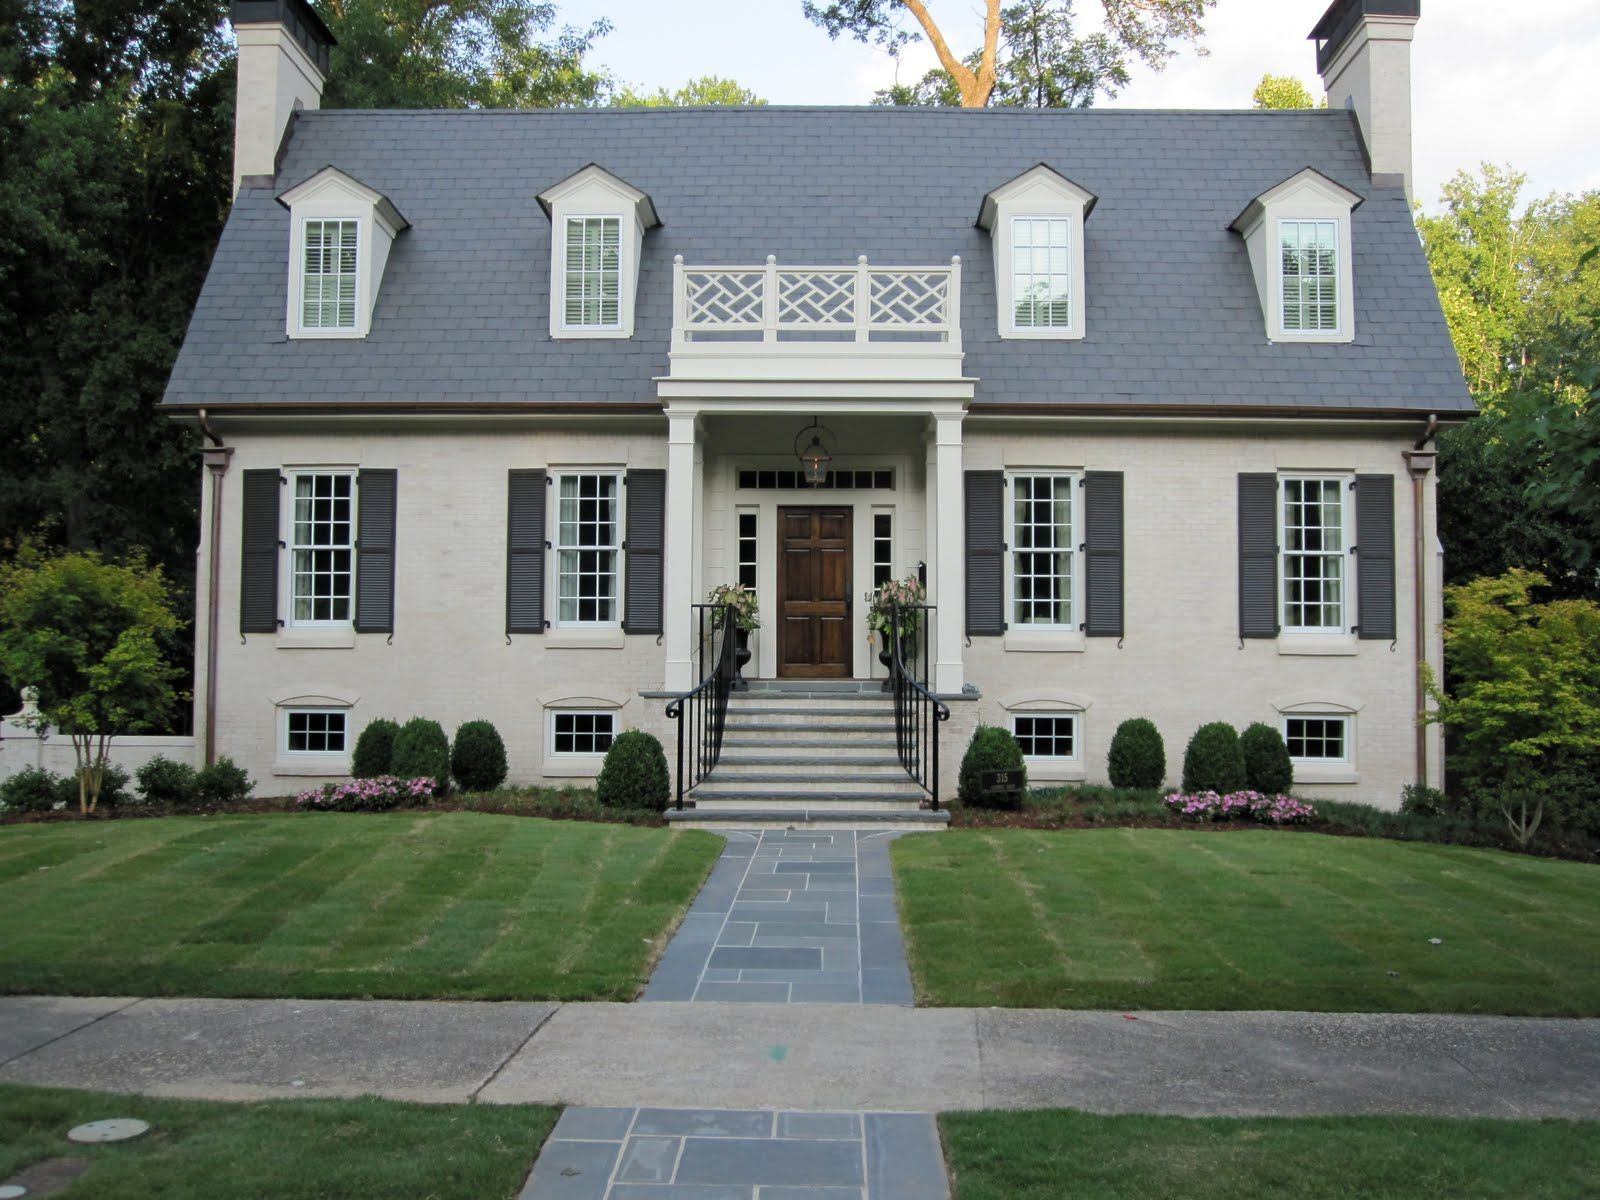 Exterior paint color ideas for brick homes - Exterior Paint Colors Painted Brick Homes In Atlanta Beautiful Home What Curb Appeal